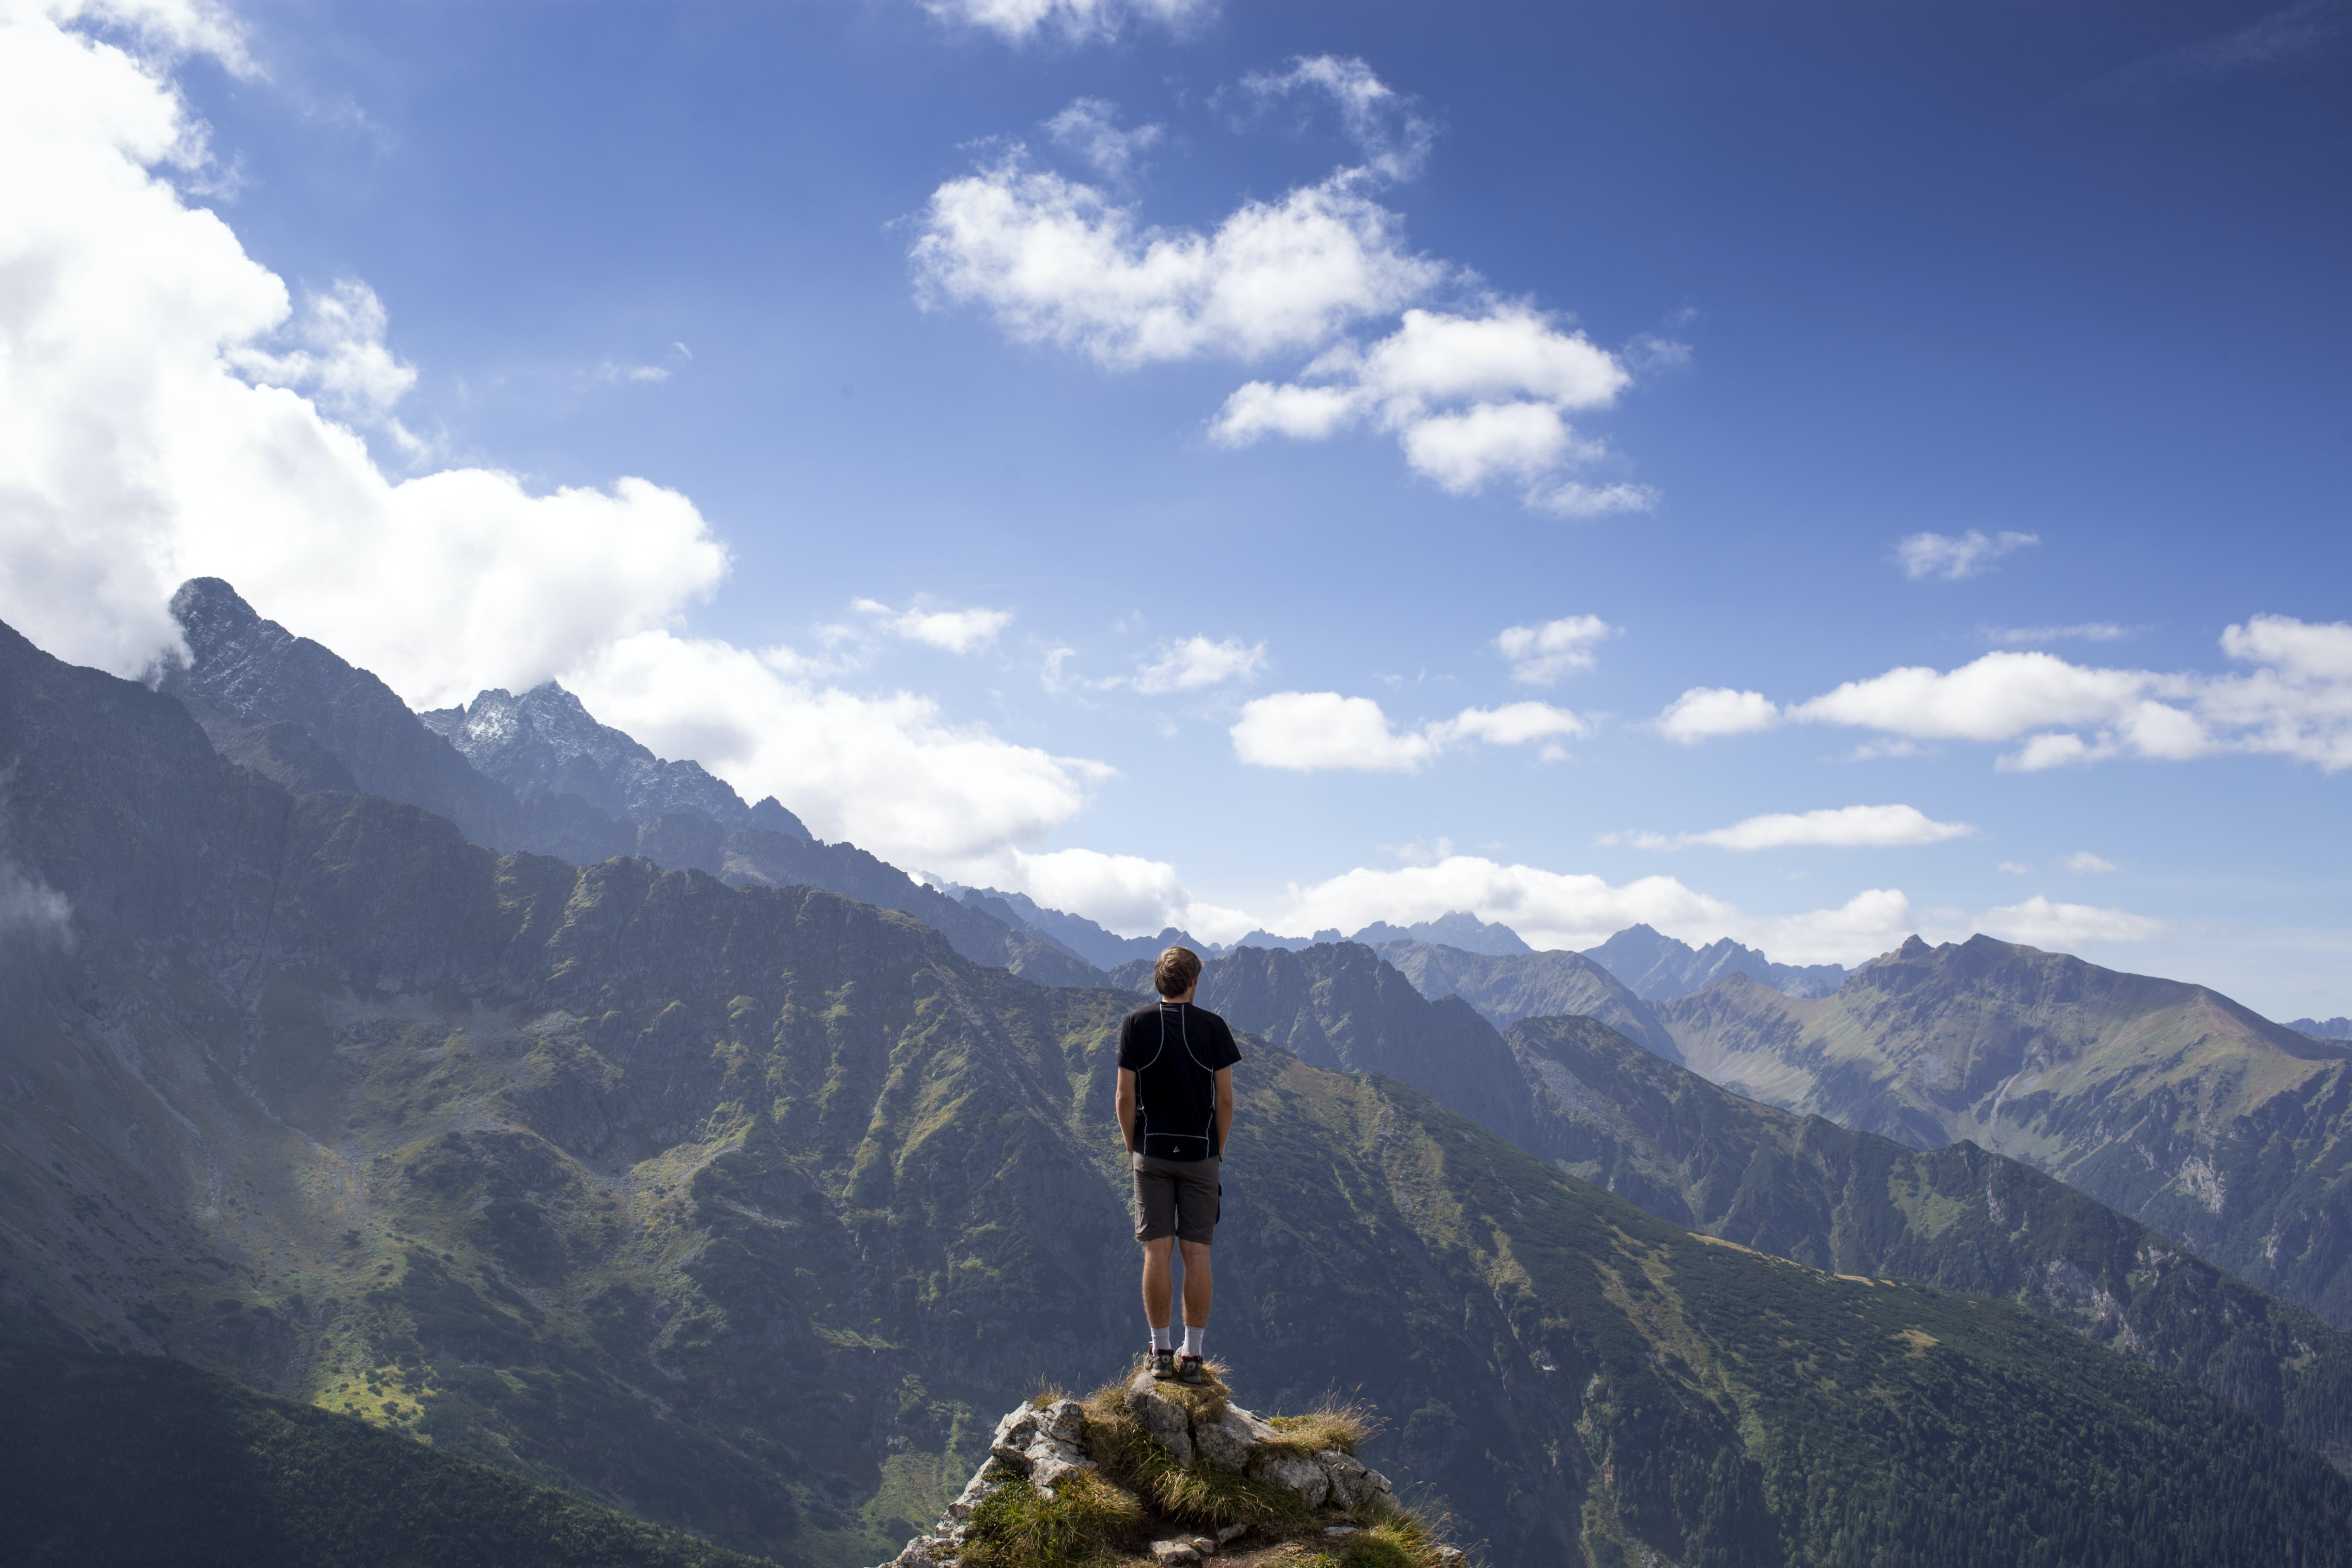 man wearing black shirt and gray shorts on mountain hill beside mountains under white and blue cloudy skies